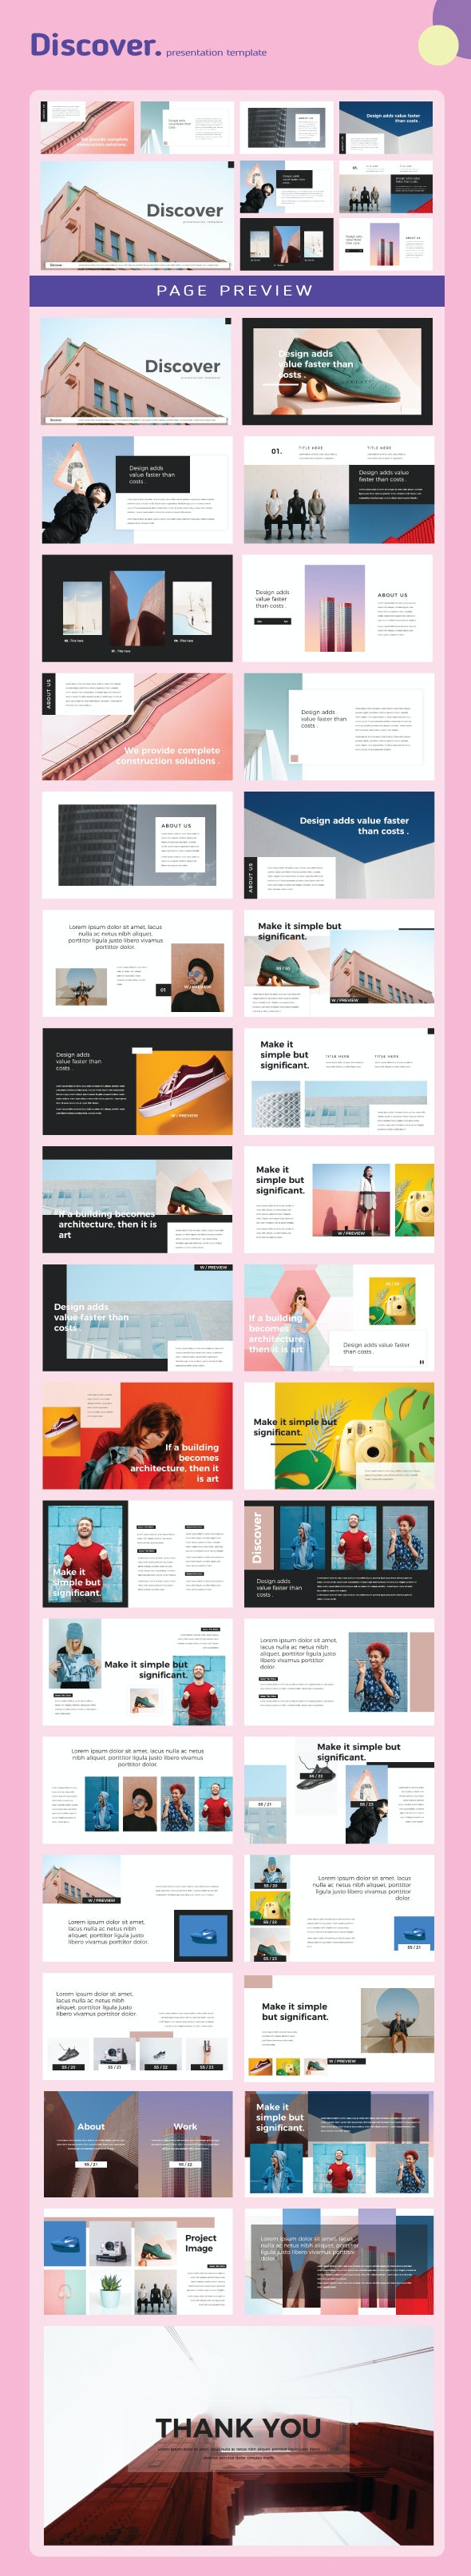 Discover Google Slides Templates - Creative PowerPoint Templates